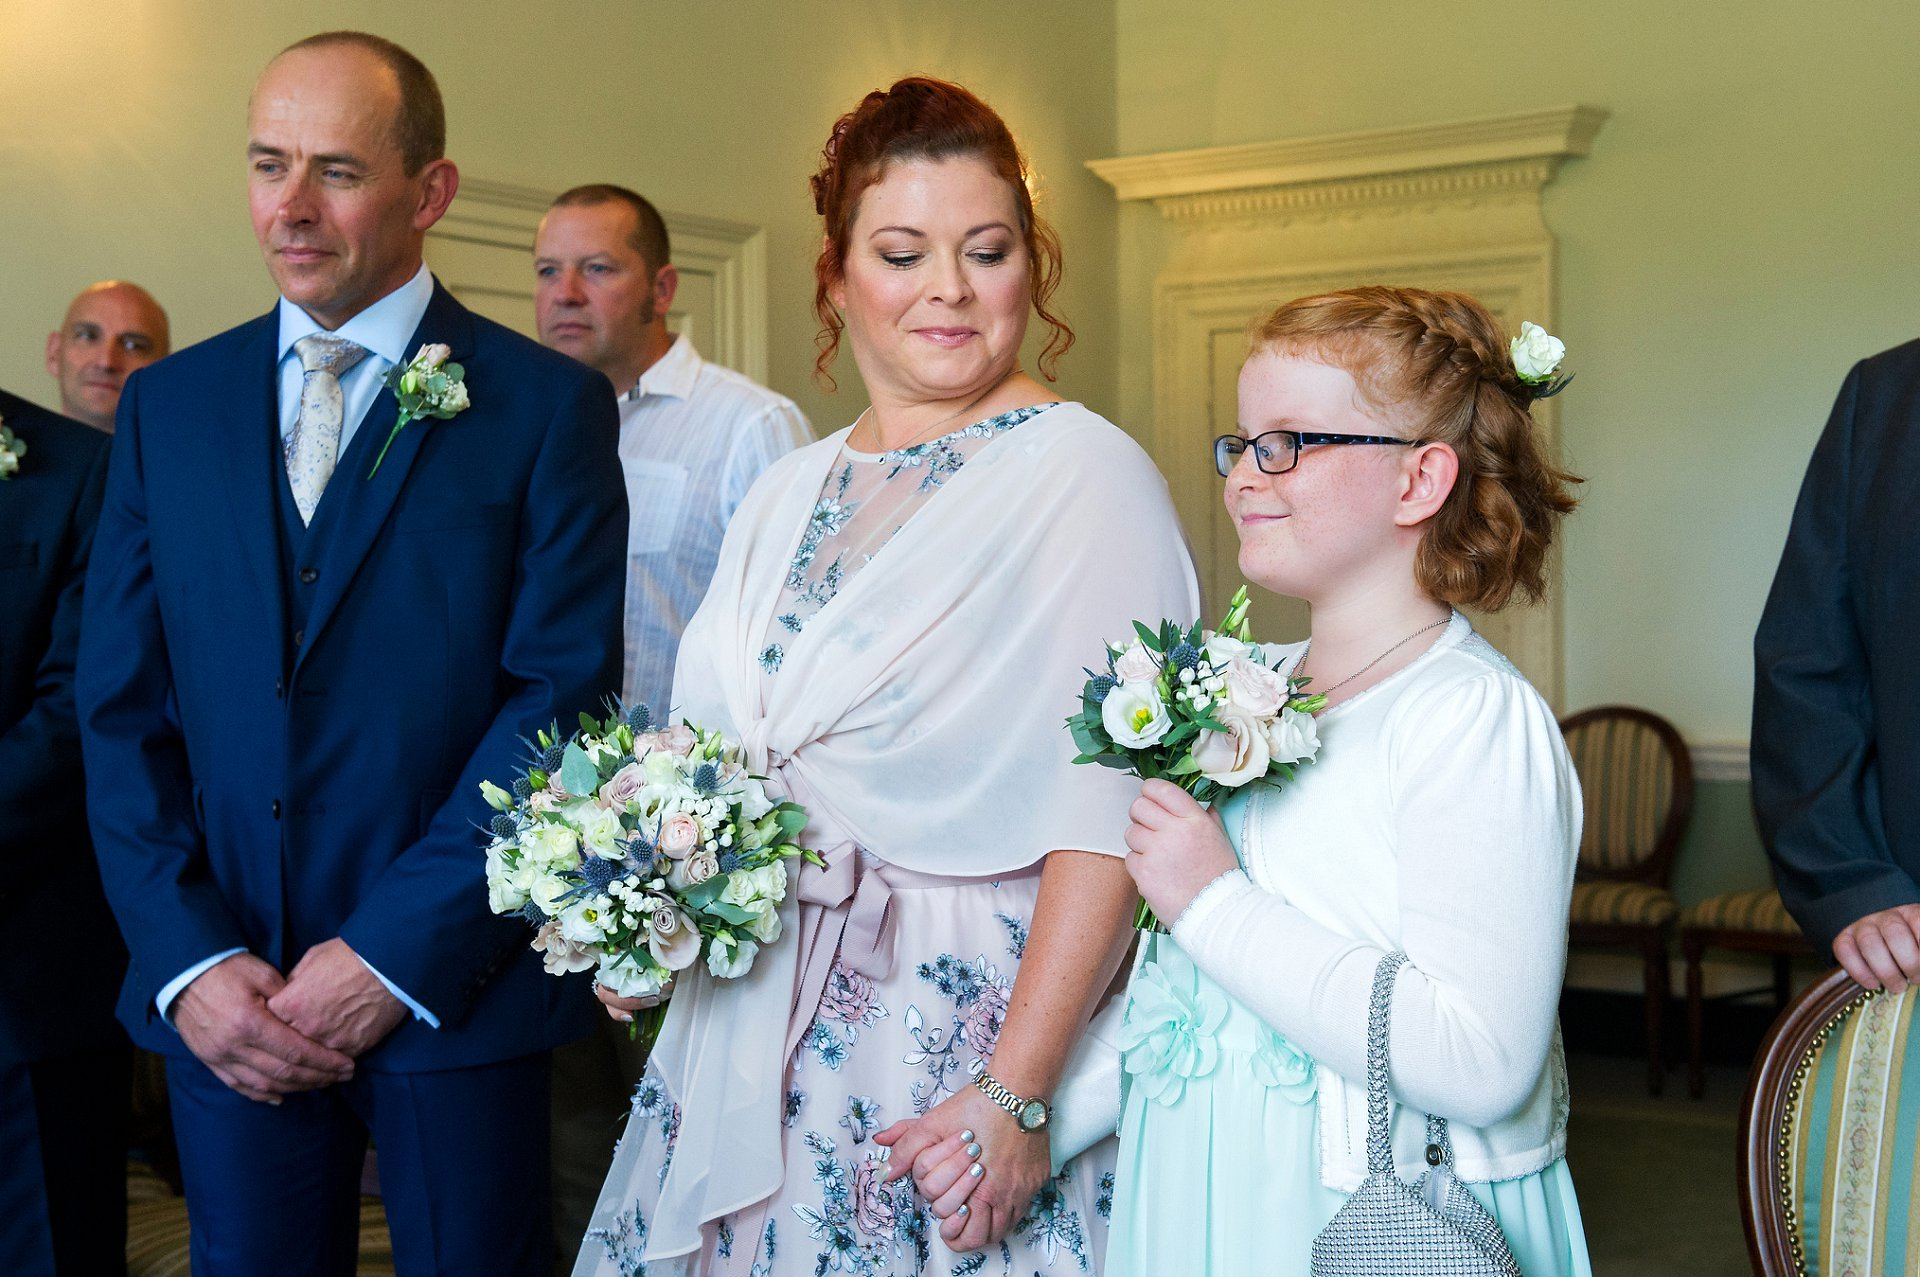 Horsham Registry Office is on North Street and is adjacent to Horsham Park adn the Conservatory Cafe. It is a wonderful West Sussex wedding venue. The bride in the Drawing Room looks at her daughter at the start of this civil marriage ceremony